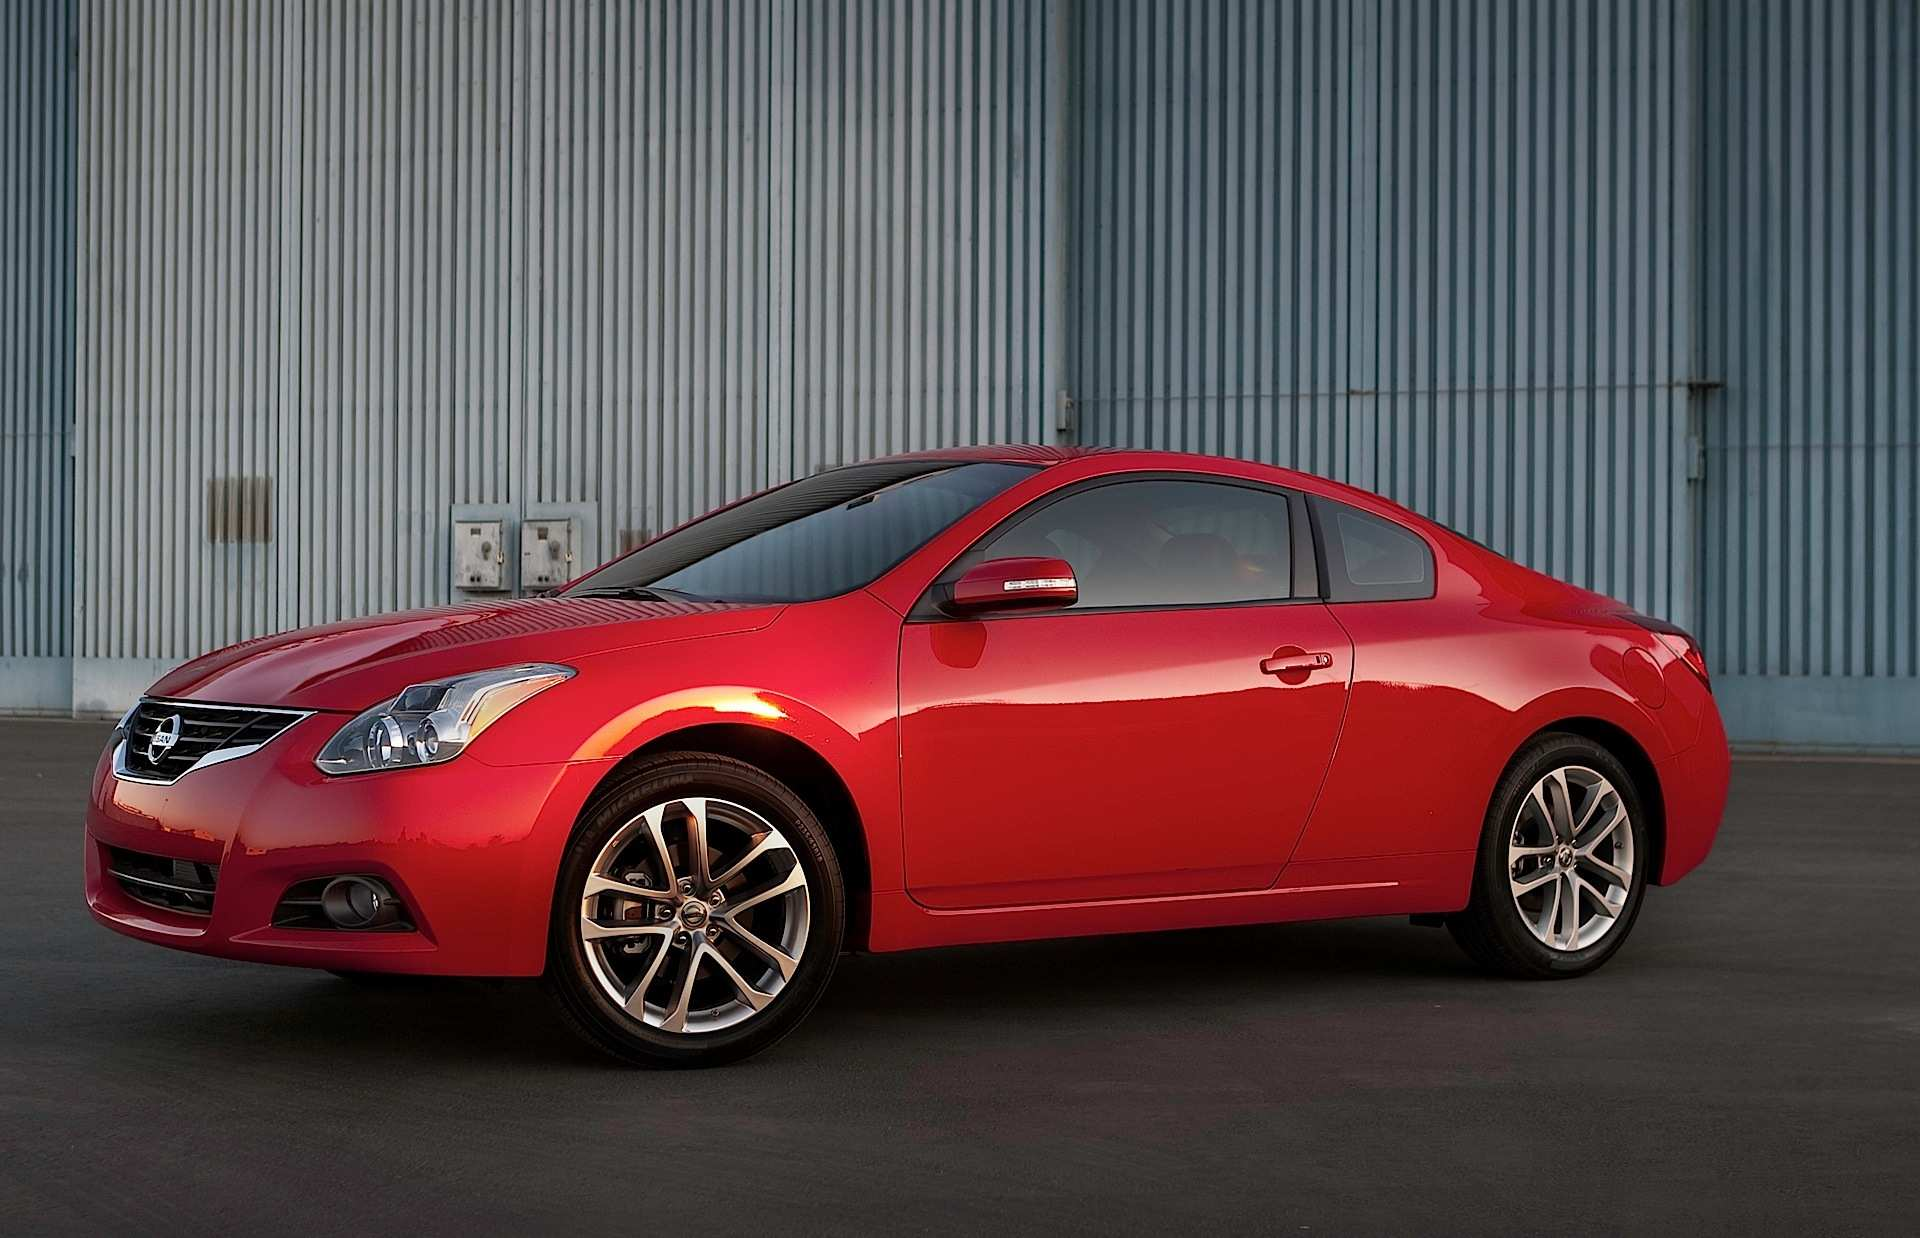 29 A Nissan Altima Coupe 2017 Review And Release Date